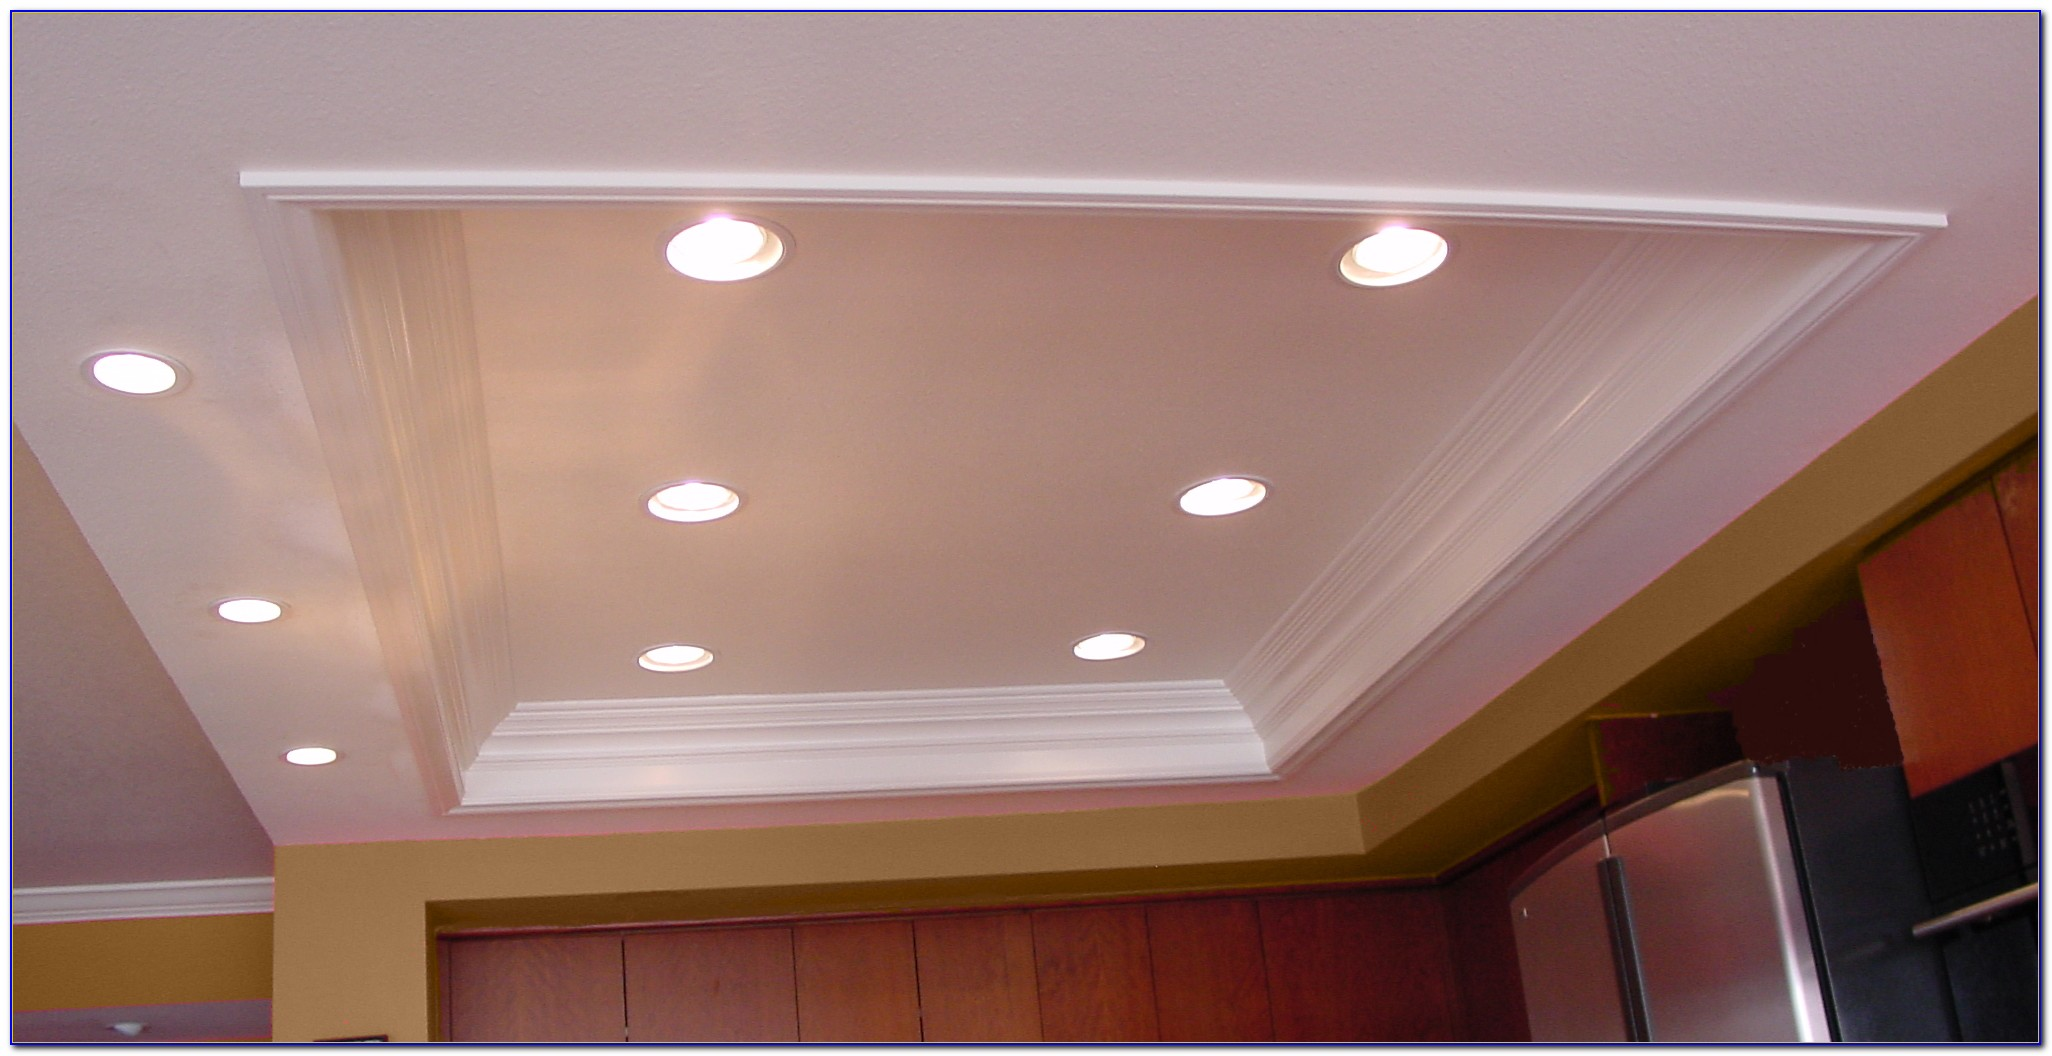 Ceiling Lights For Kitchen B&q